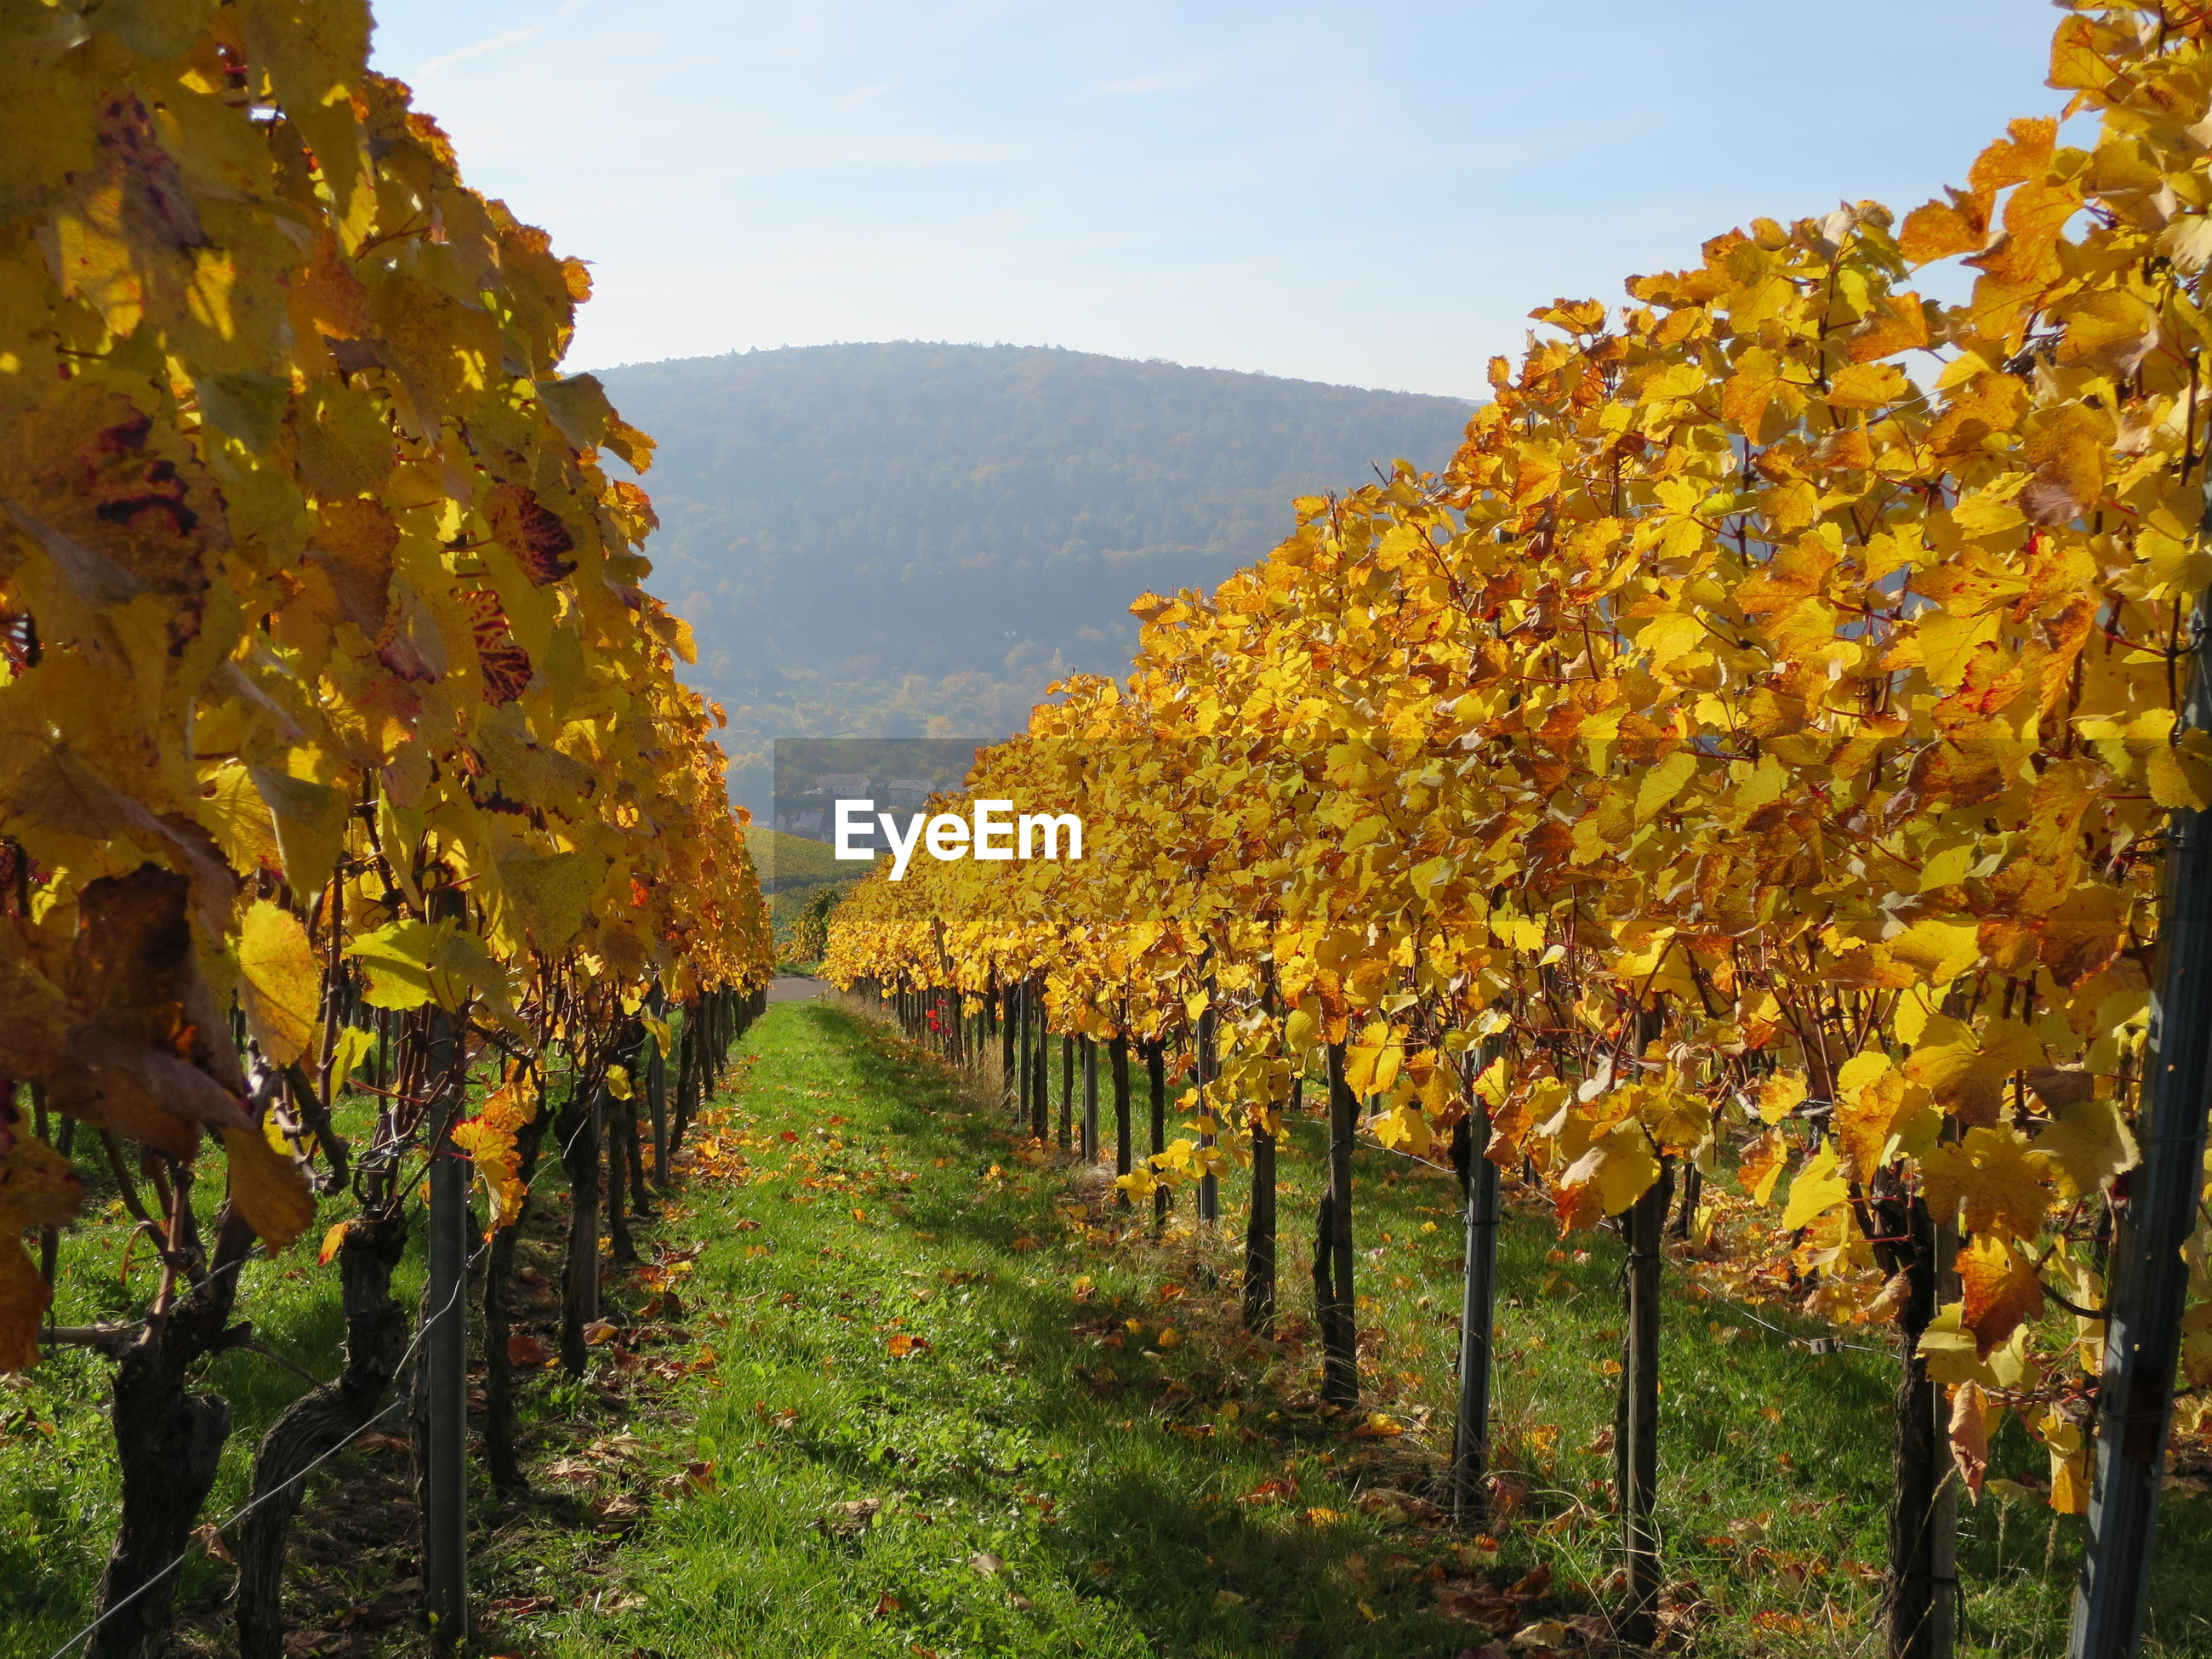 VIEW OF VINEYARD AGAINST SKY DURING AUTUMN